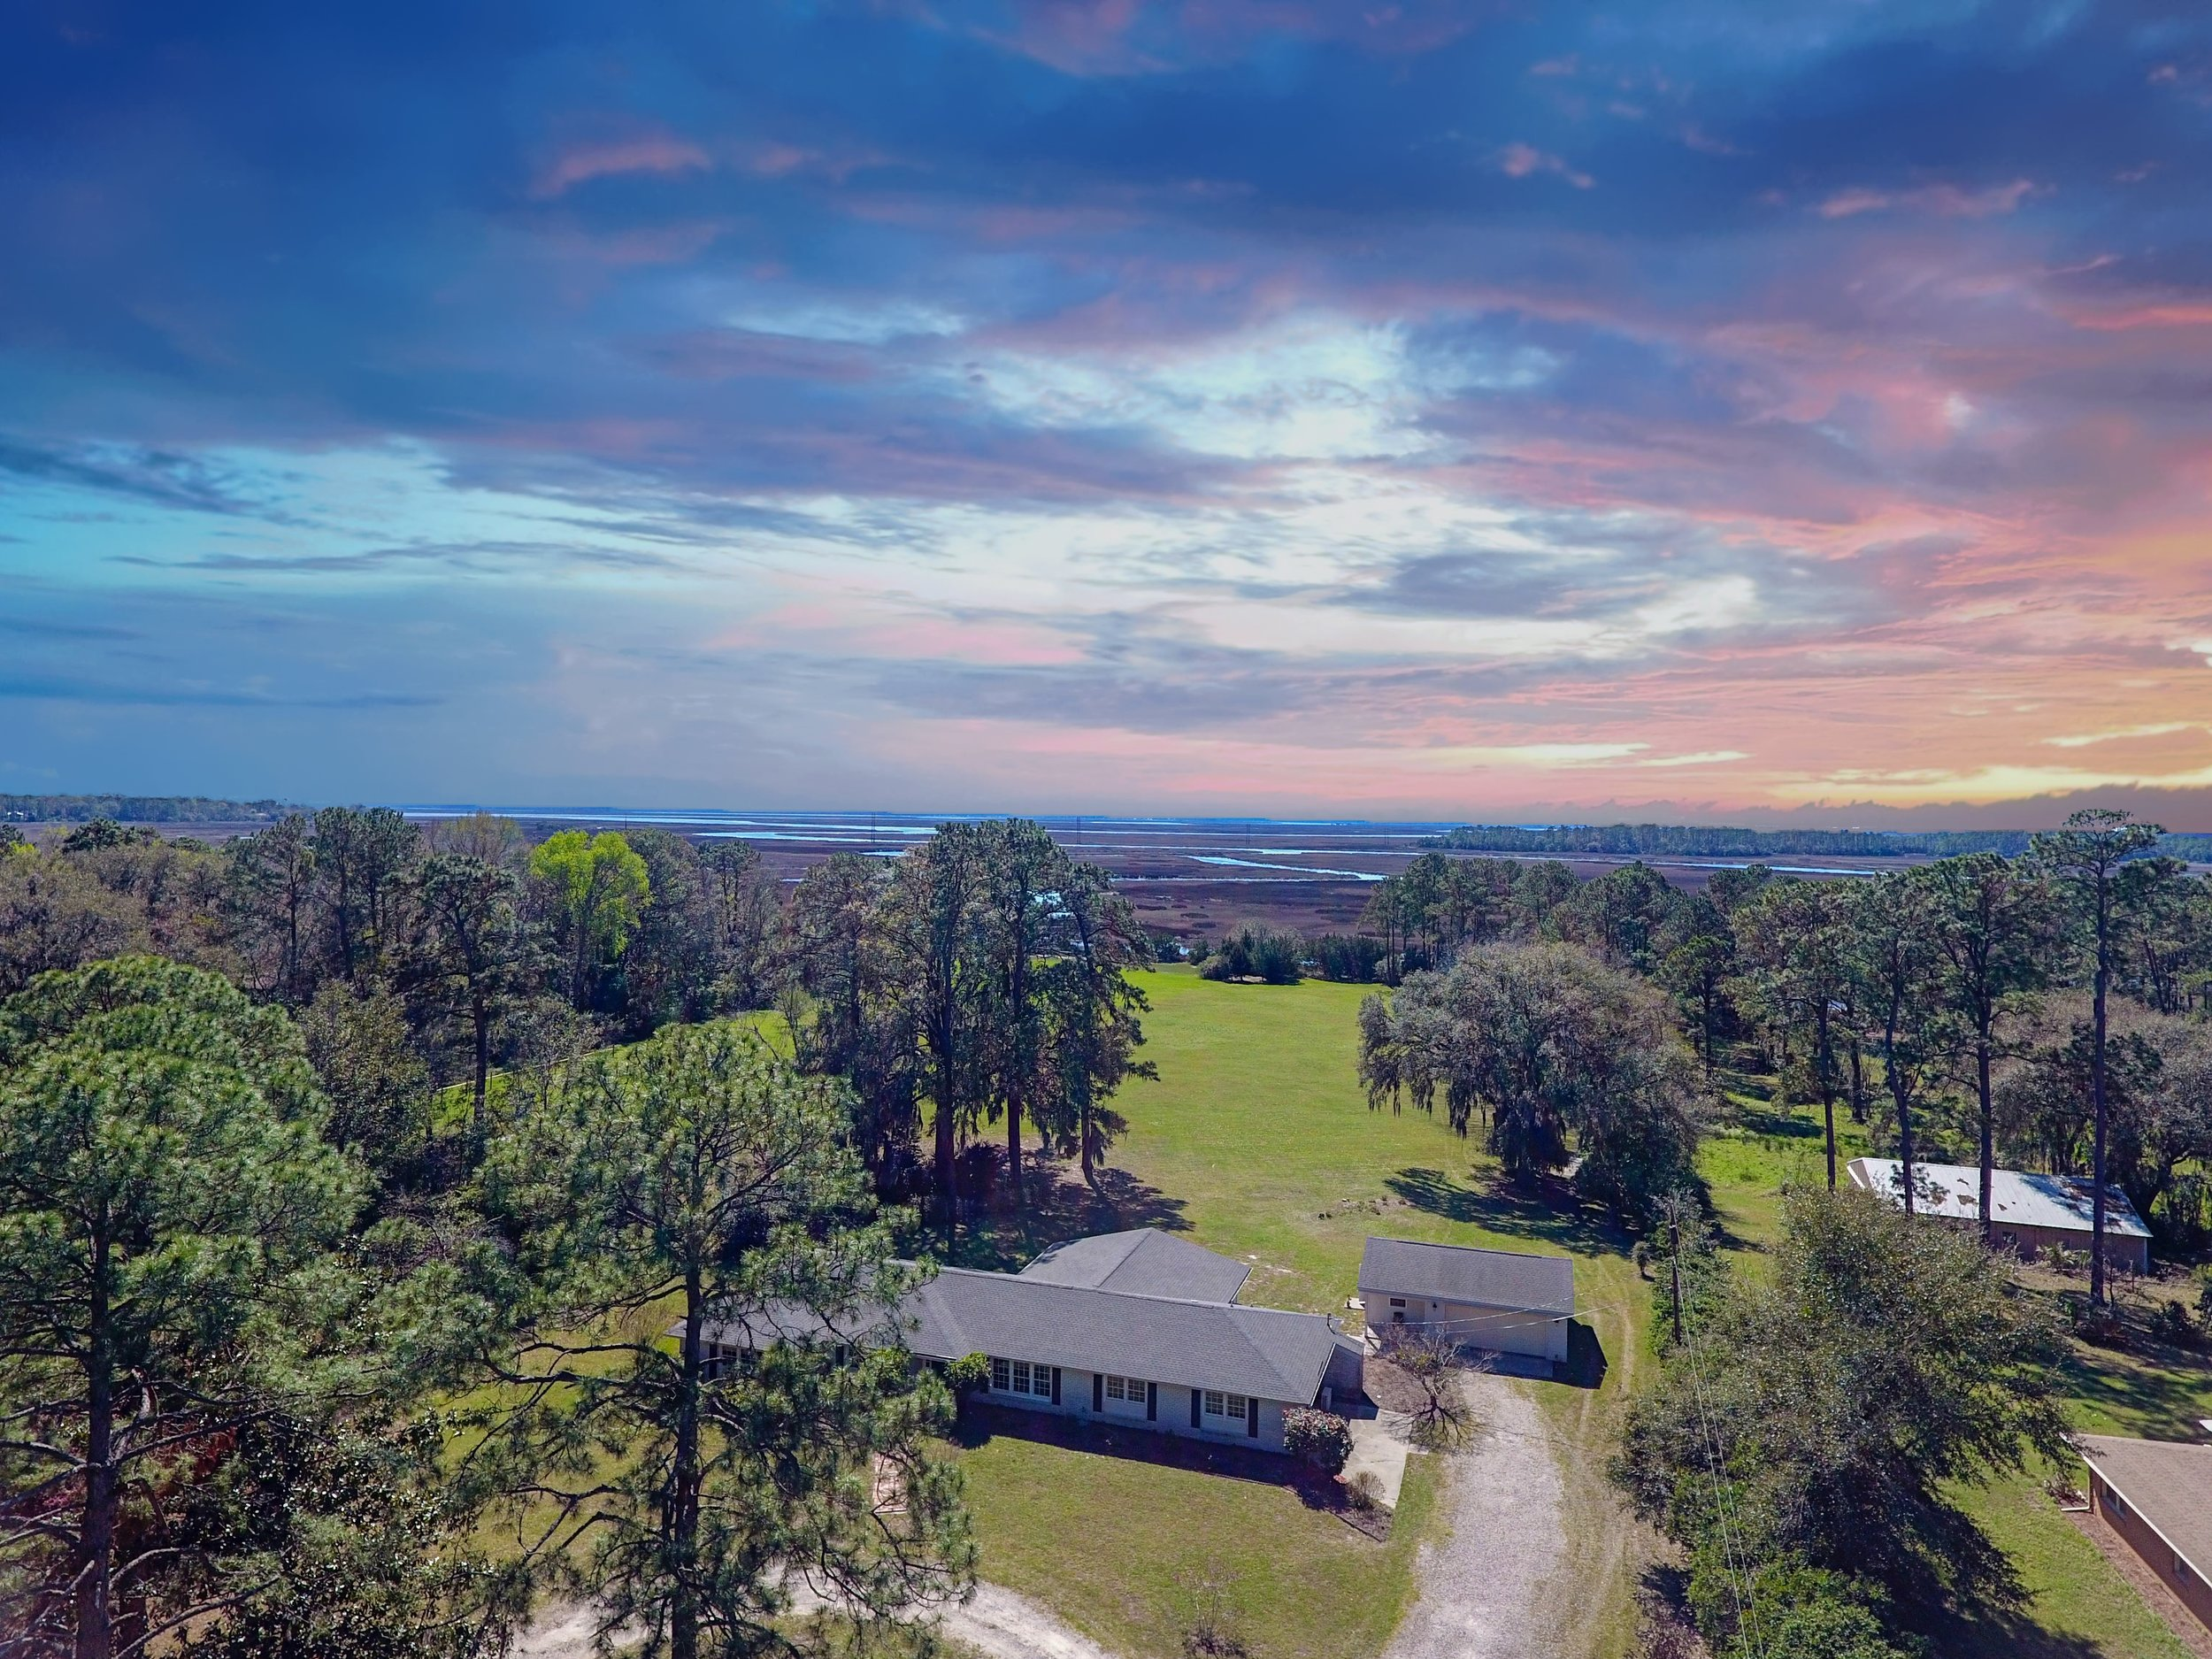 Aerial Photography - Change Your Perspective with low altitude images that will make your property views rise above the othersLEARN MORE >>